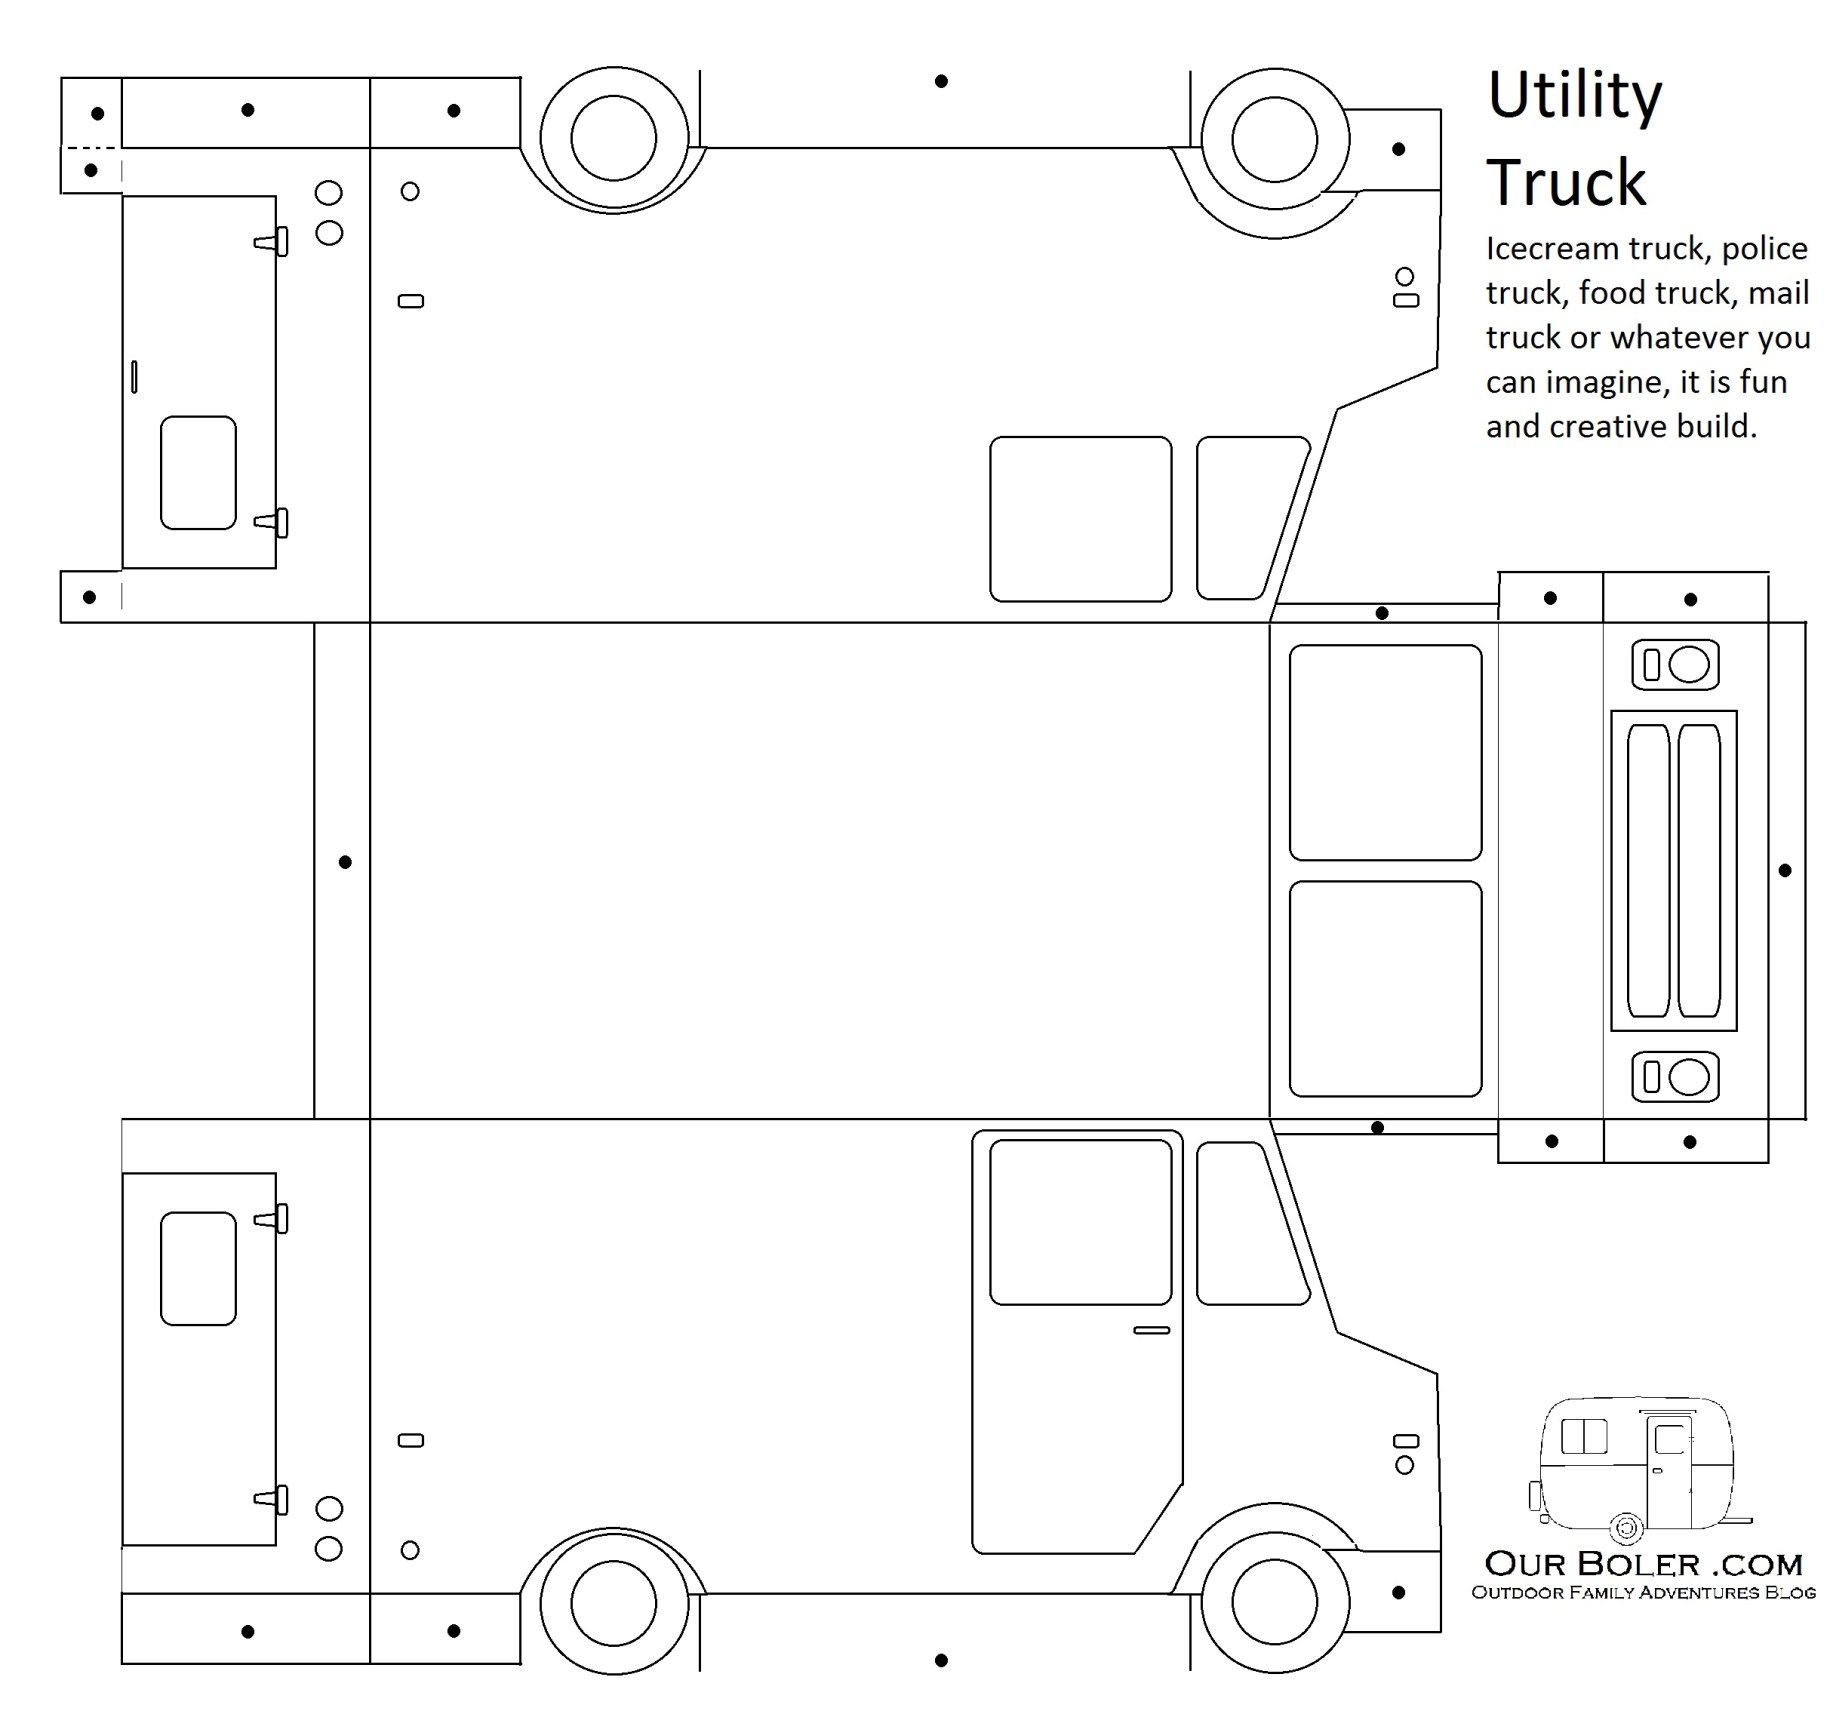 Utility Work Truck Great For Ice Cream Food Police Or